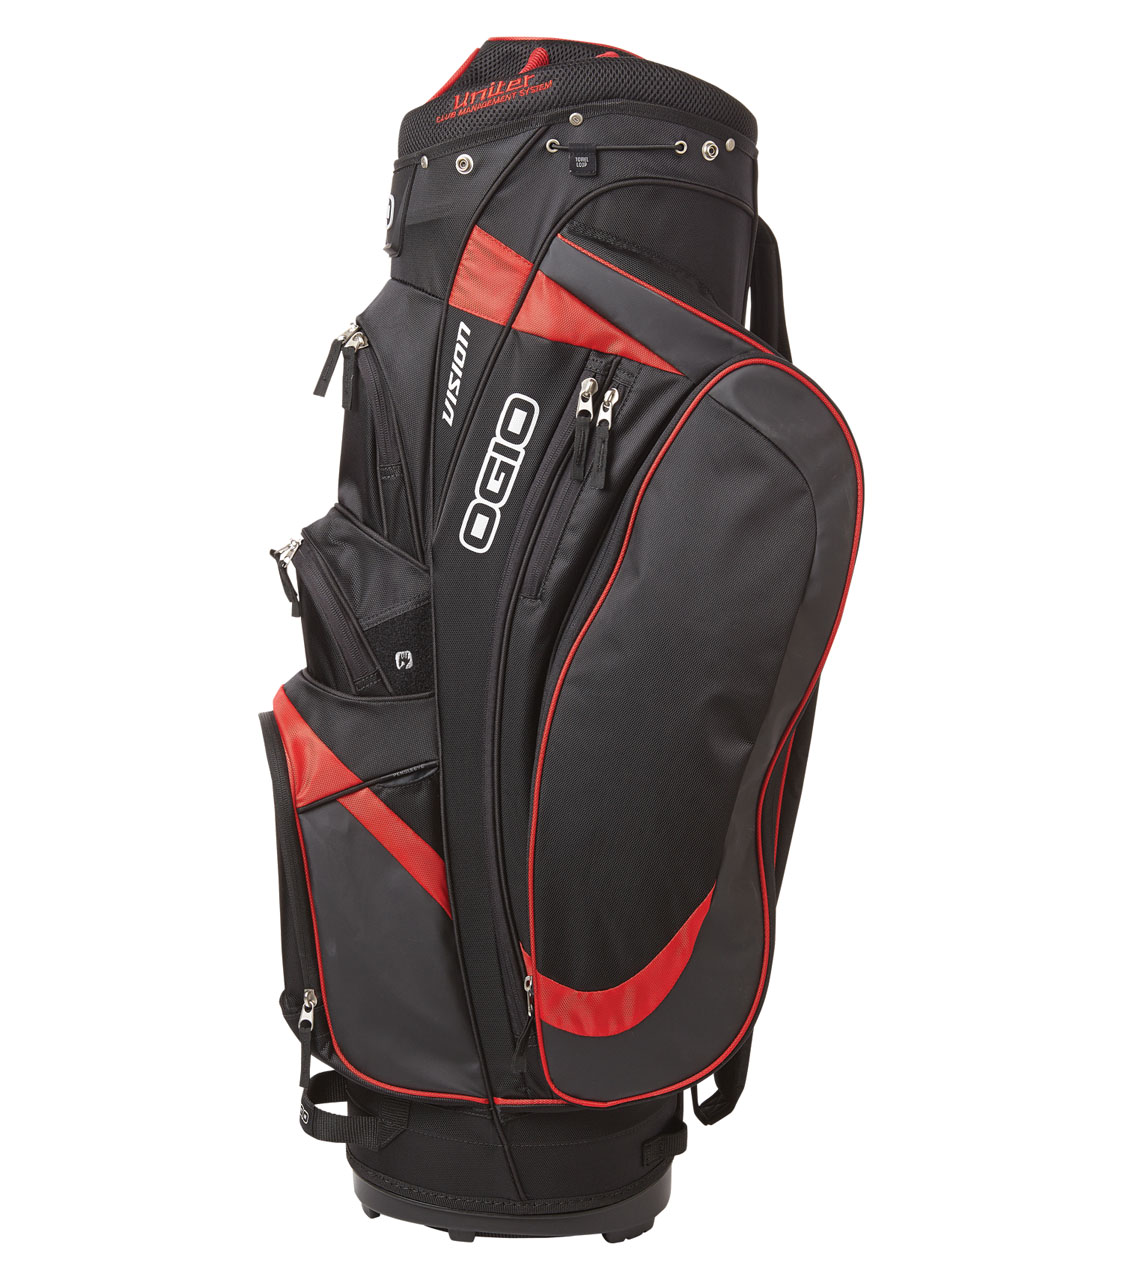 Ogio Vision Cart Bag Bags Custom Embroidery And